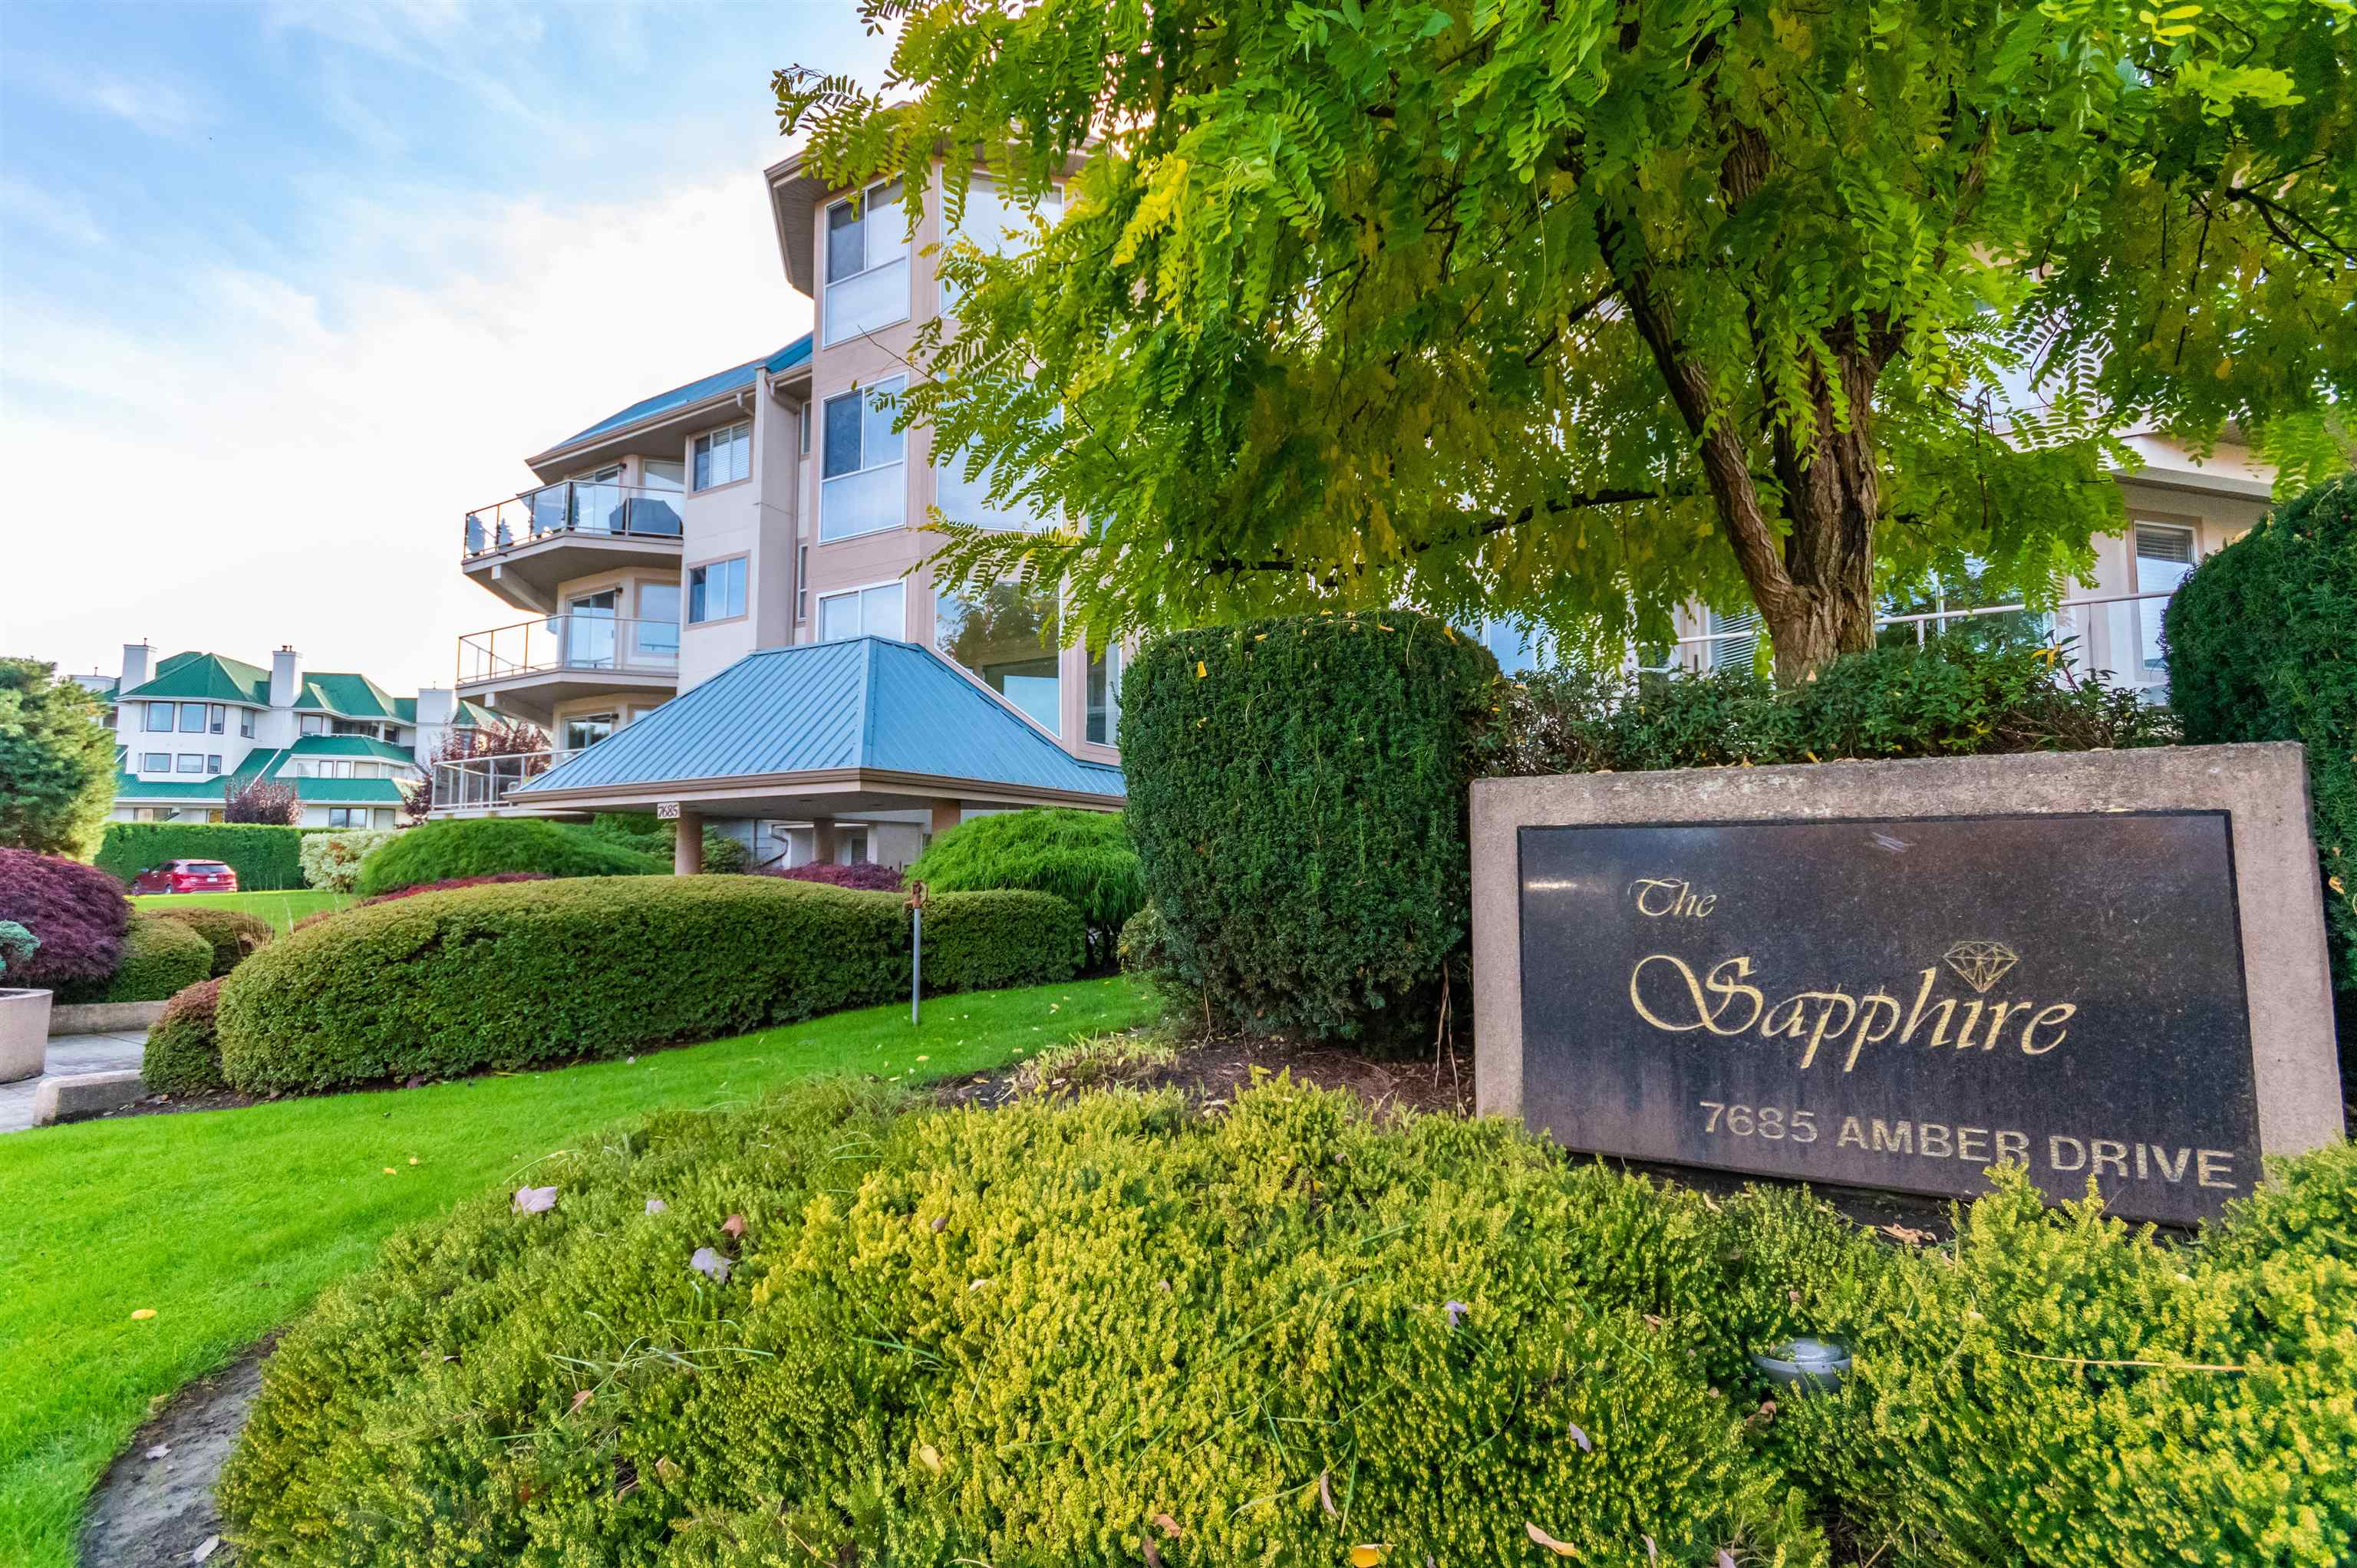 216 7685 AMBER DRIVE - Sardis West Vedder Rd Apartment/Condo for sale, 1 Bedroom (R2627914) - #1